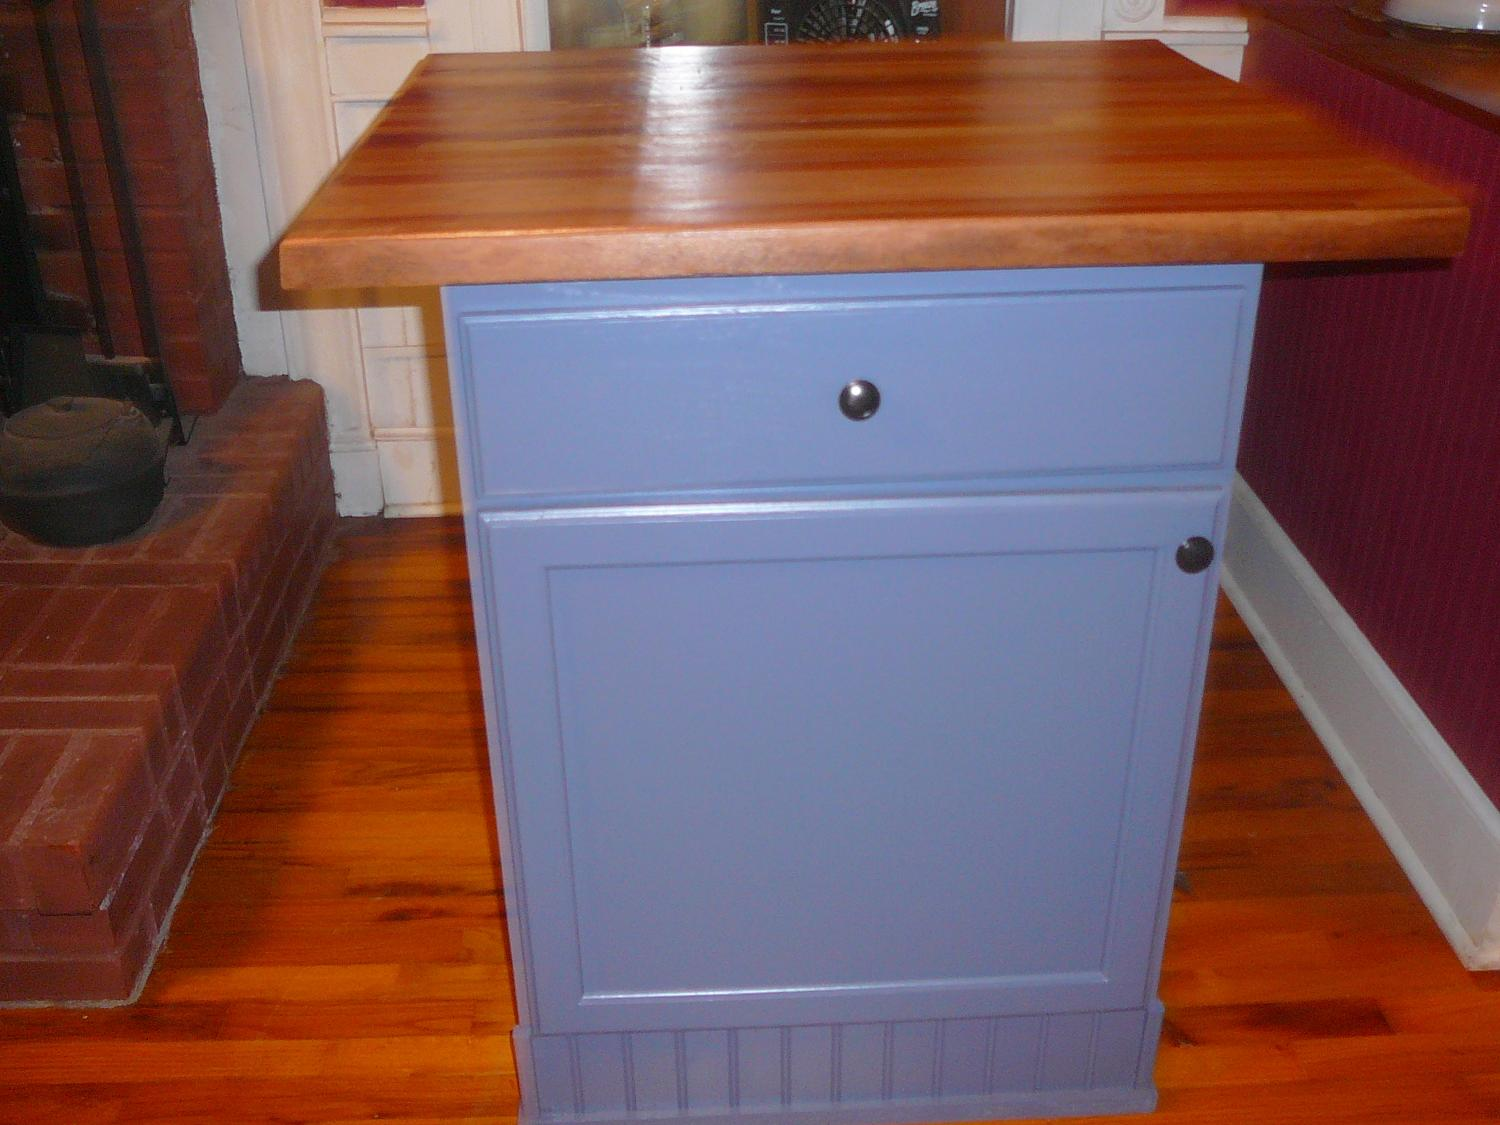 Best Kitchen Island With Butcher Block Top For Sale In Thomaston Georgia For 2020